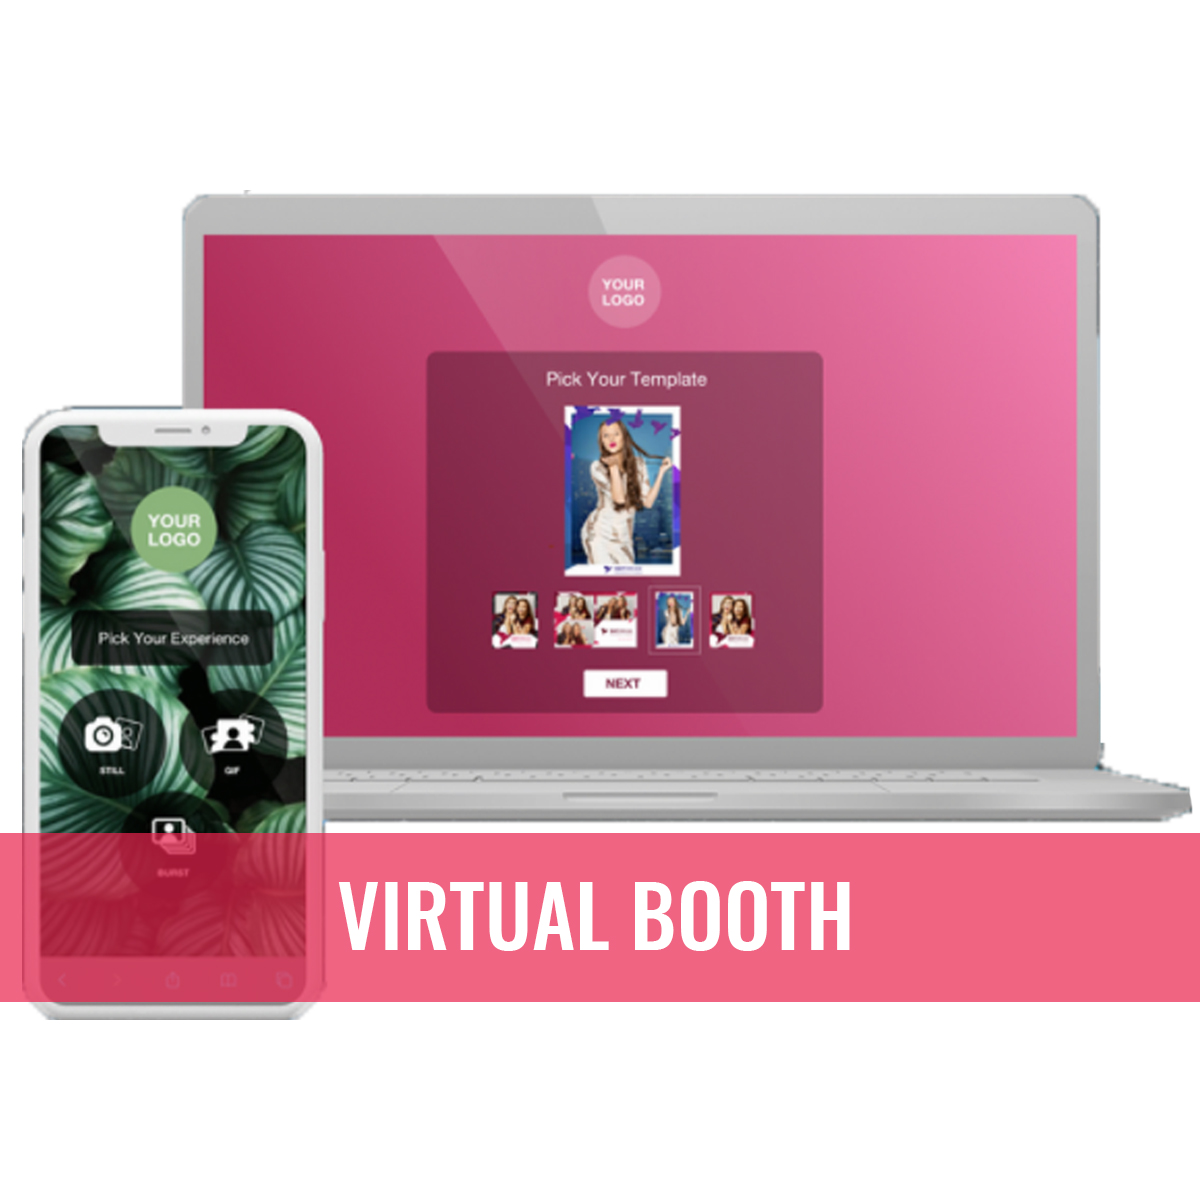 Virtual online photo booth from anywhere